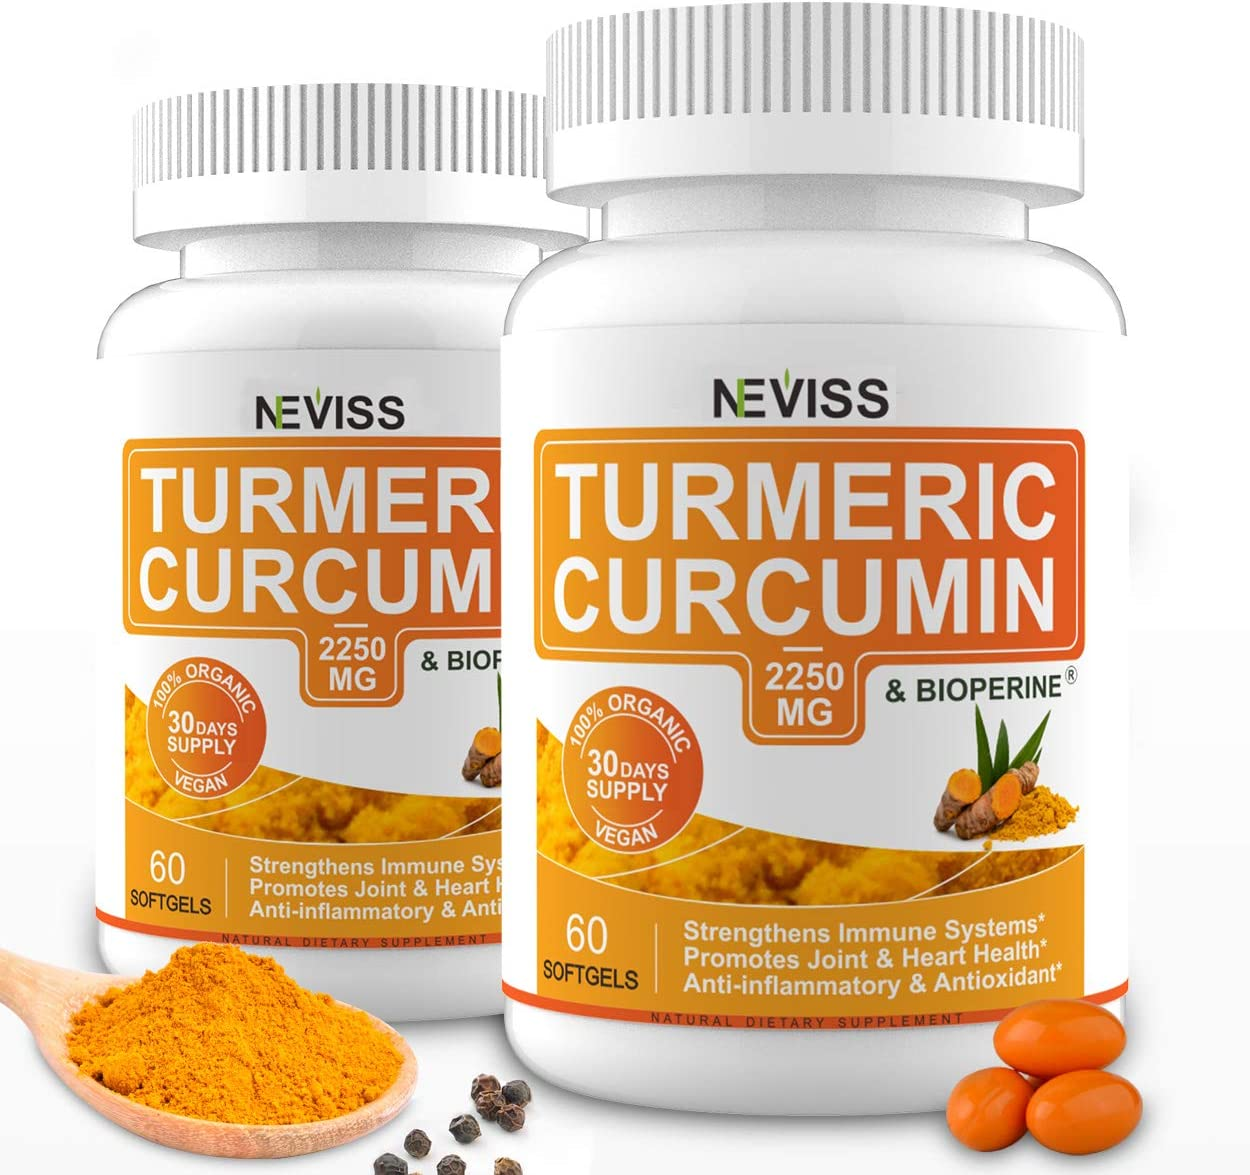 (2 Pack) Turmeric Curcumin Softgel Capsules for Joint Inflammation, Turmeric Capsules 2250MG with Bioperine (Black Pepper Extract) for Better Absorption - 120 Cts: Health & Personal Care